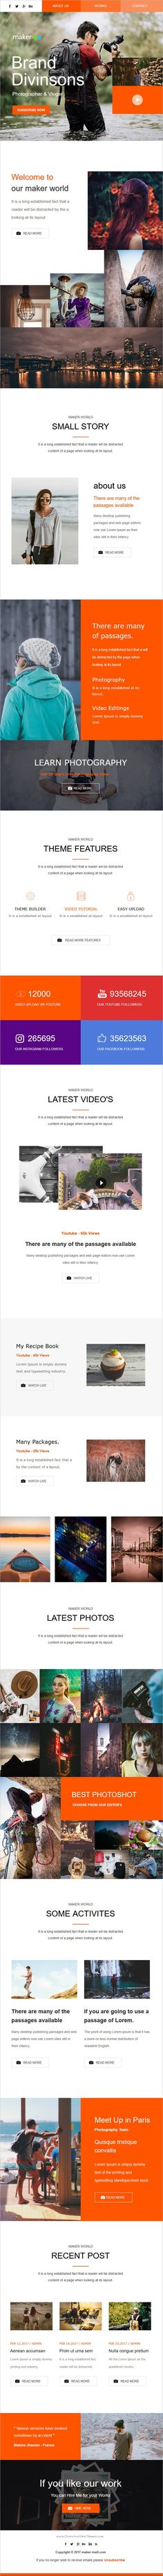 Maker mail is a modern and clean design responsive #Newsletter #Email template for viral #marketing and #promotion with online access download now➩ https://themeforest.net/item/maker-mail-responsive-email-template-online-access/19482792?ref=Datasata